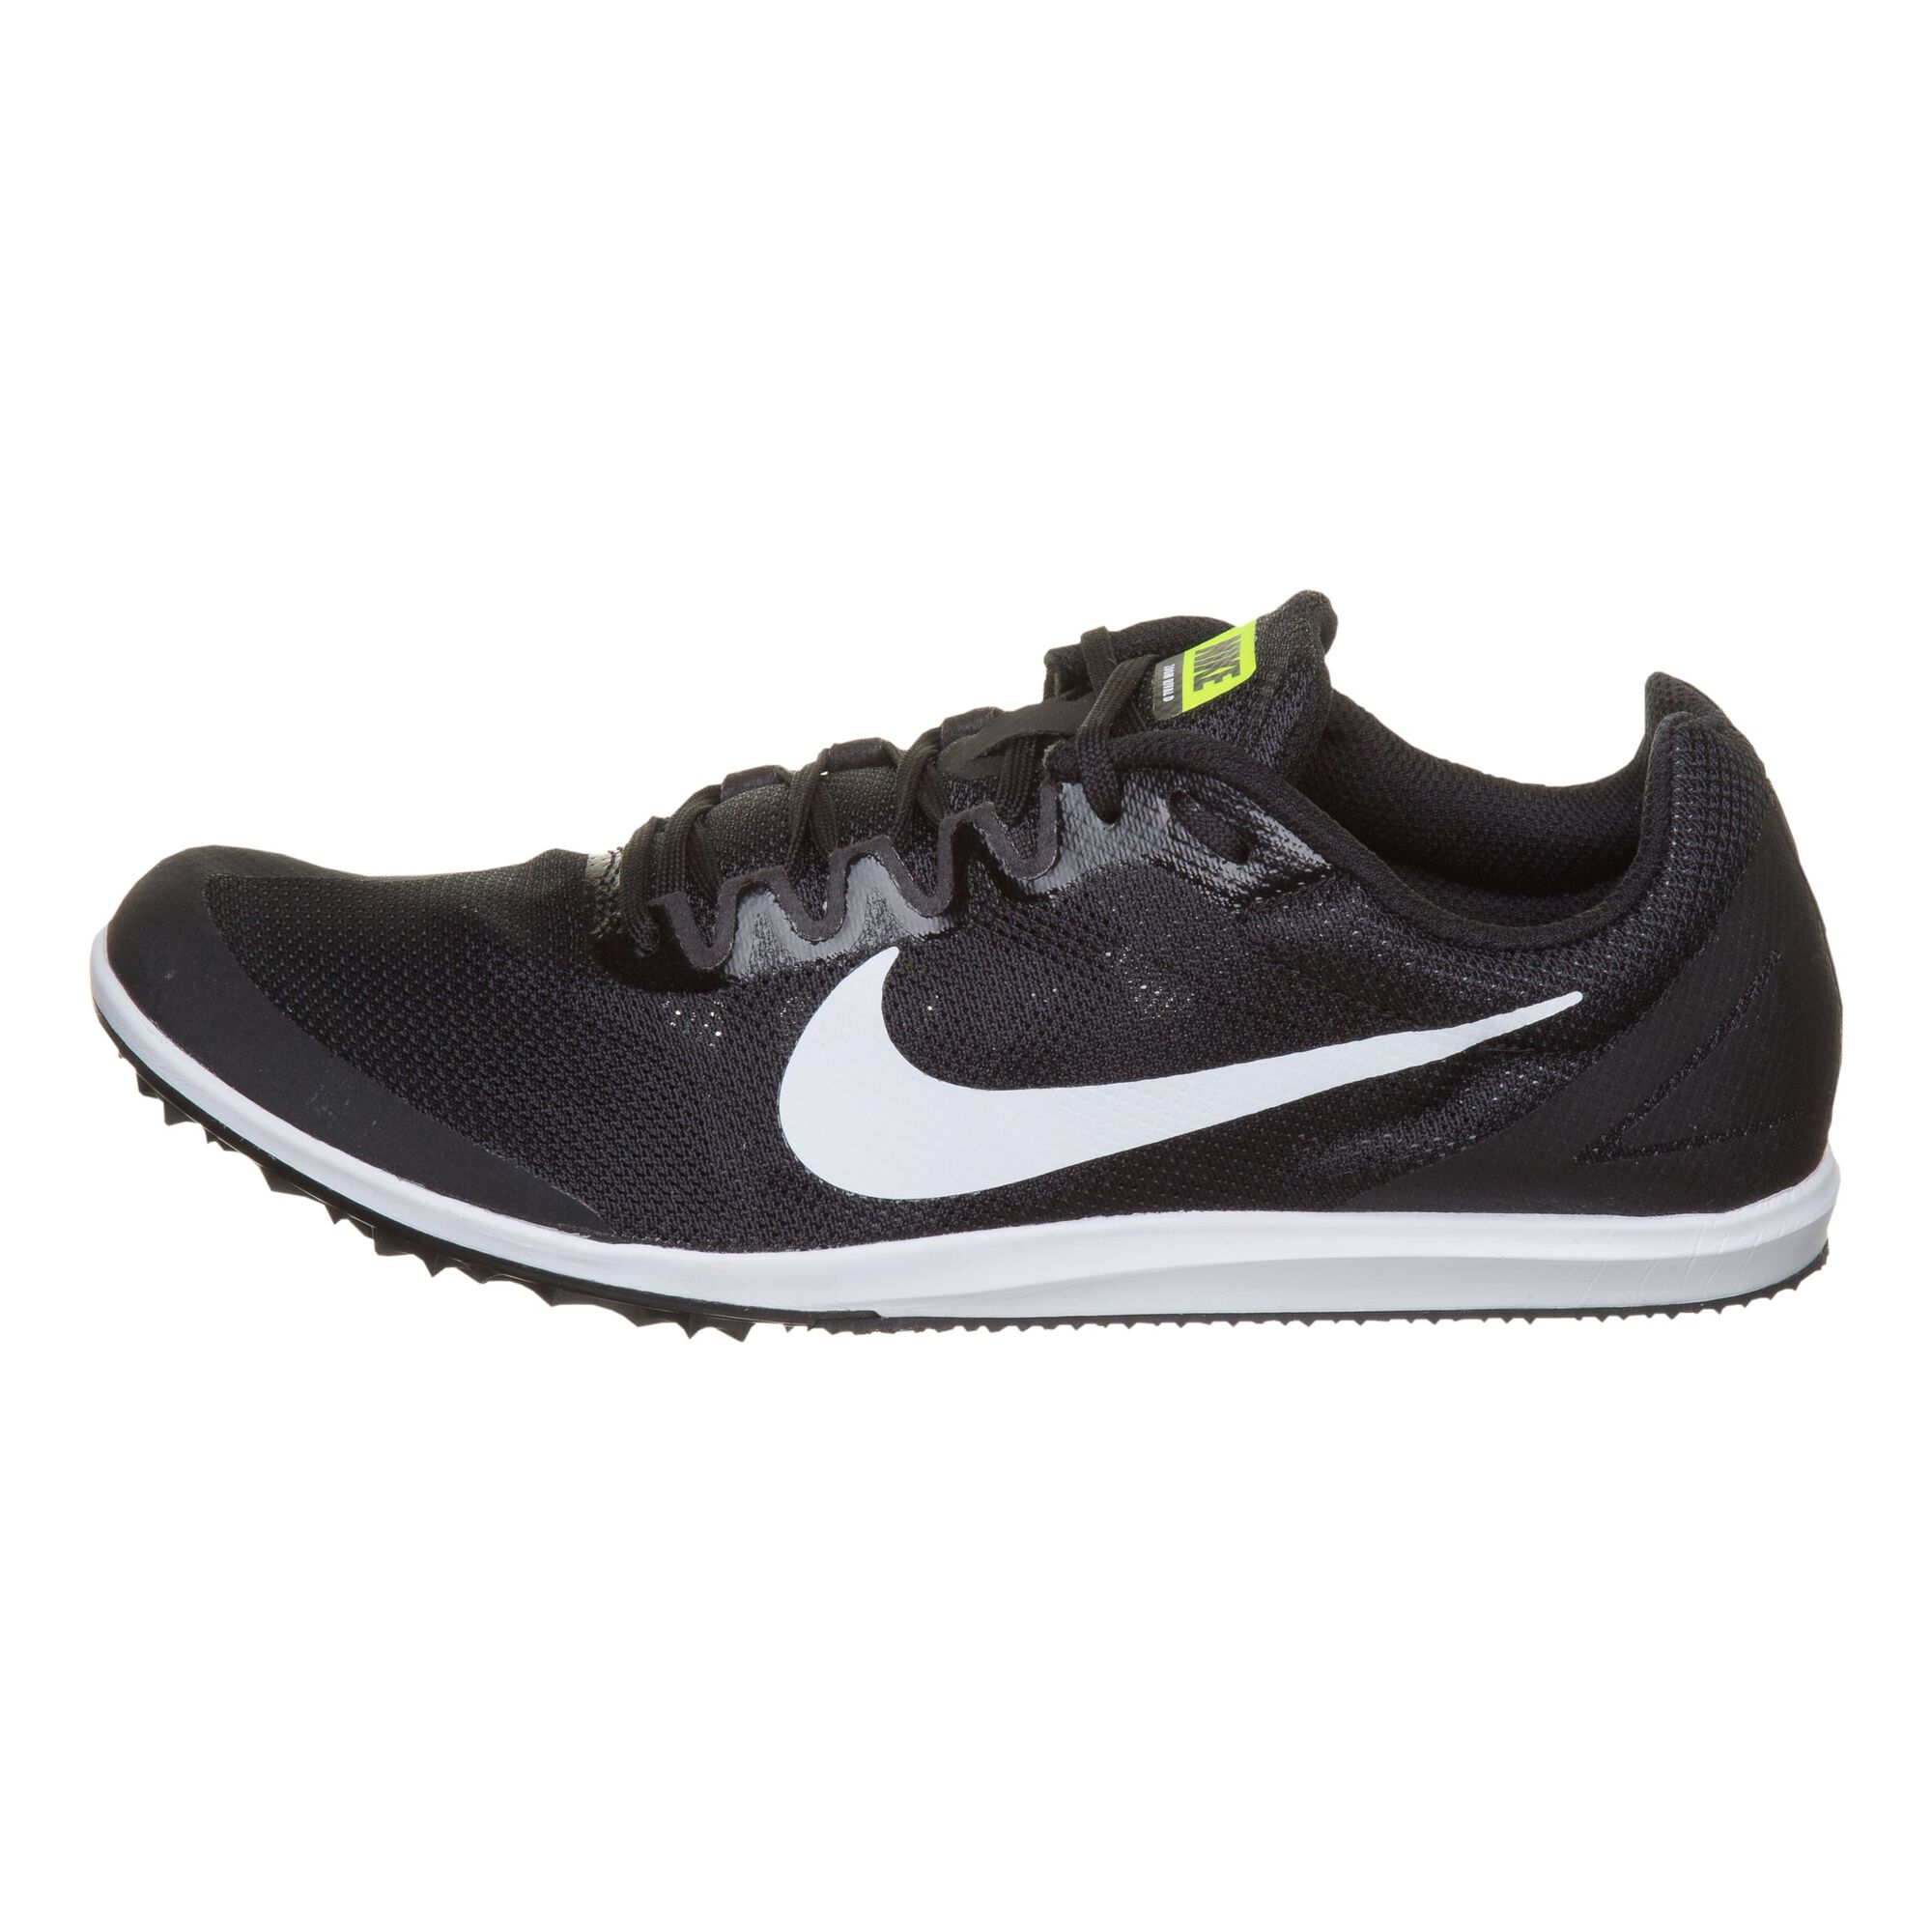 persona saludo mueble  buy Nike Zoom Rival D 10 Spike Shoes - Black, White online   Jogging-Point